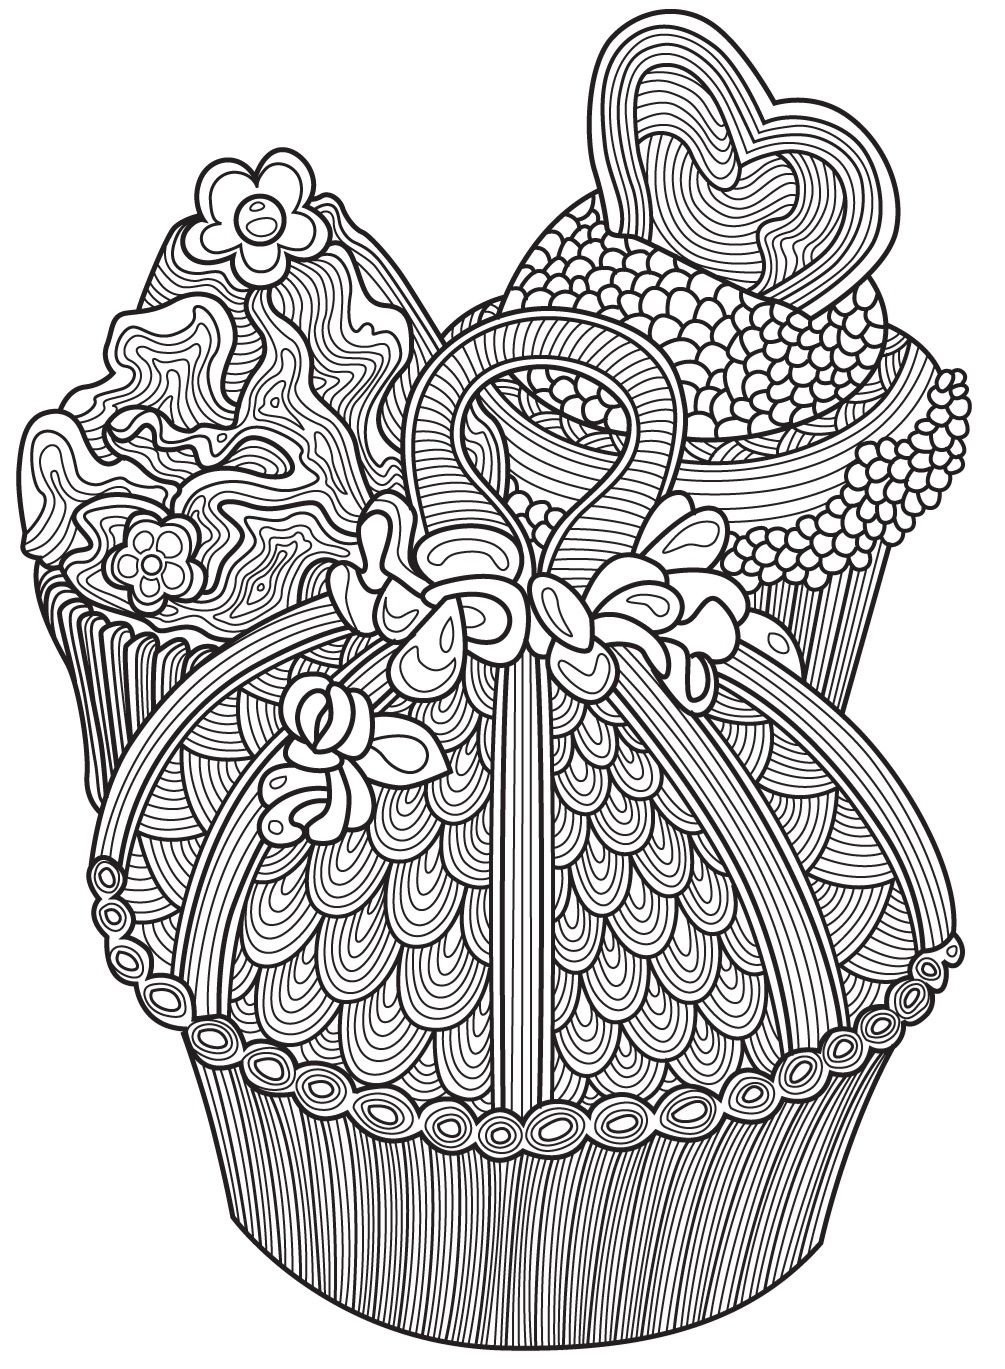 Cupcake Zentangle Coloring Pages